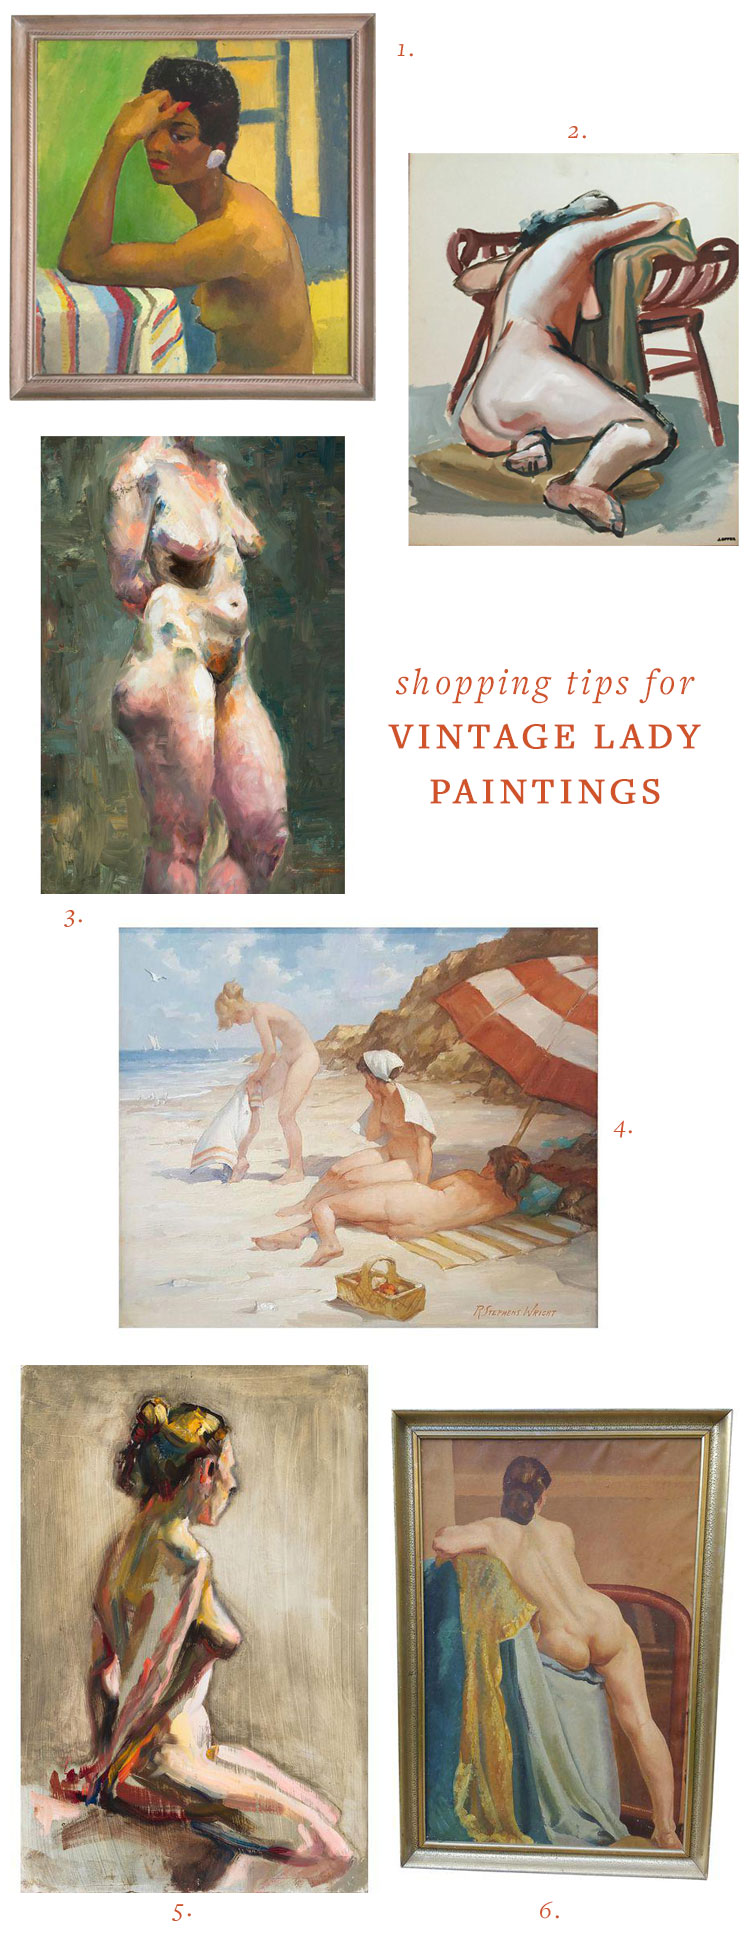 vintage naked lady and nude portrait painting round up + shopping tips to score the best vintage piece! get all the resources on jojotastic.com